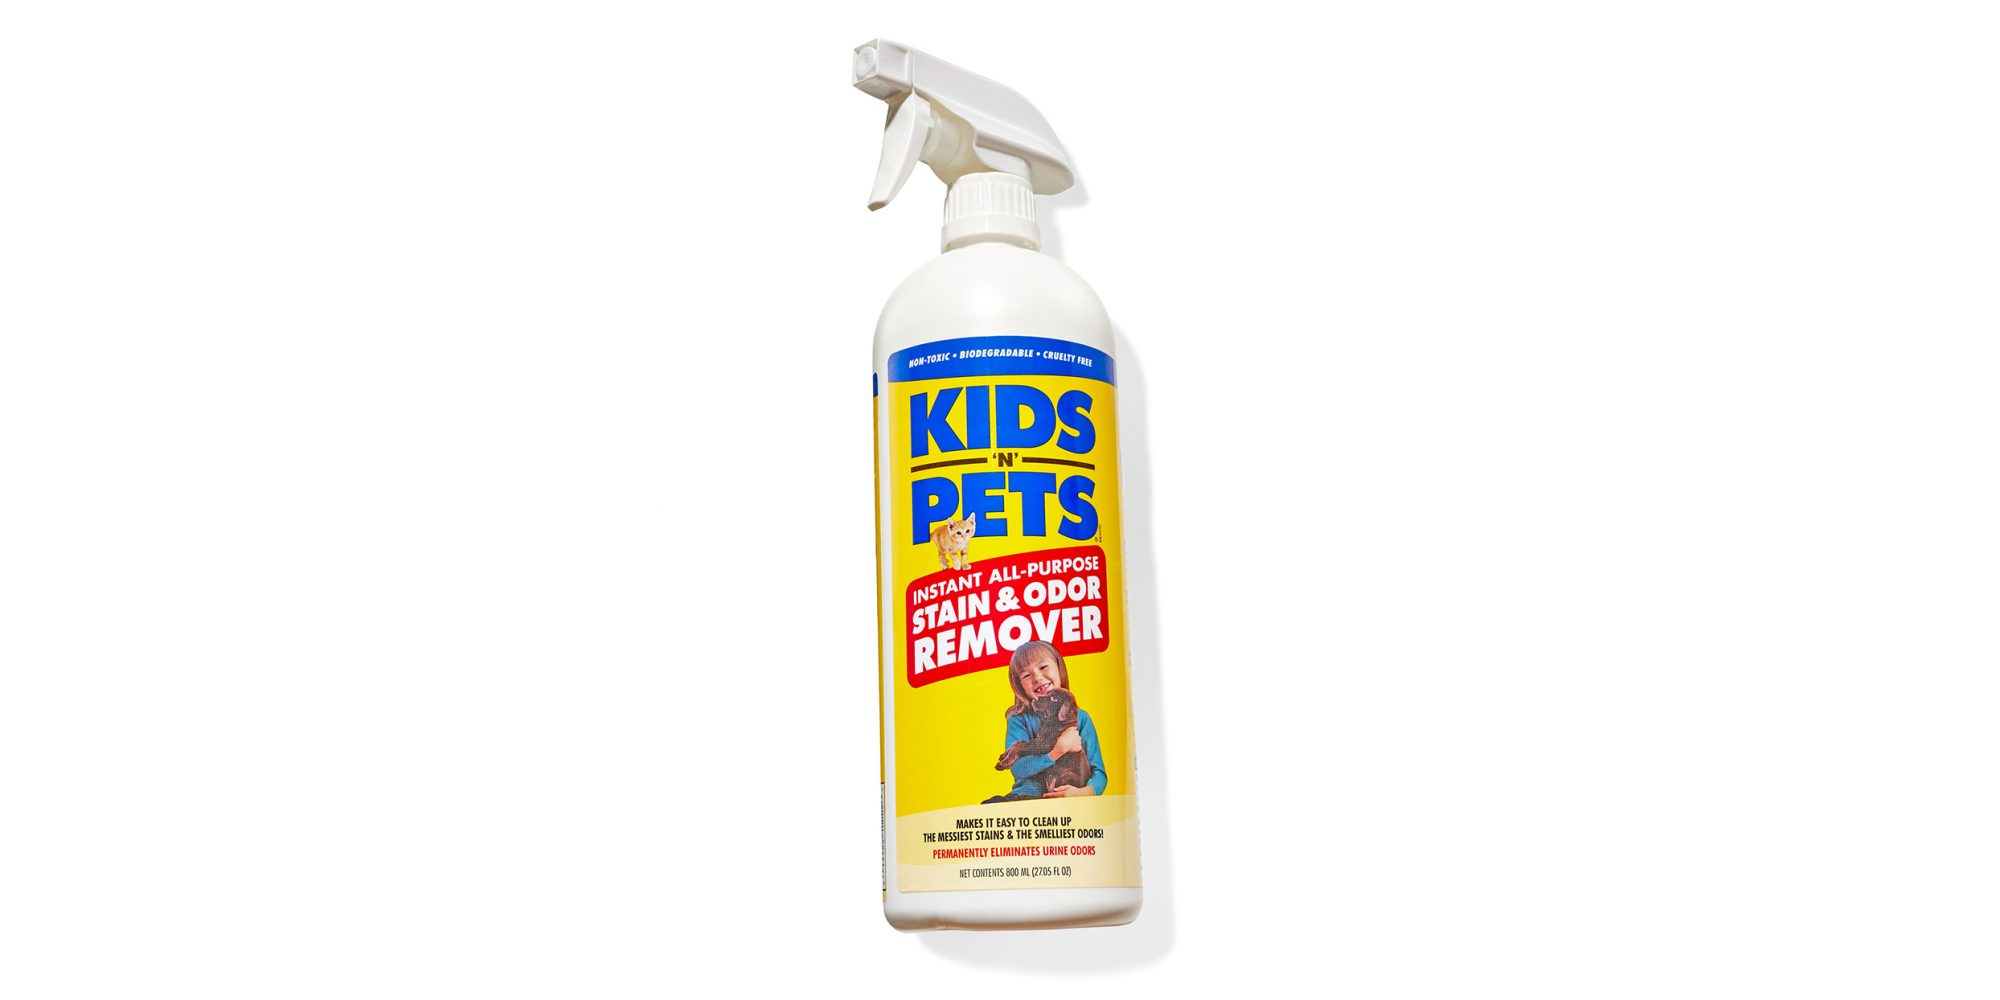 Kids 'N' Pets Instant All-Purpose Stain & Odor Remover